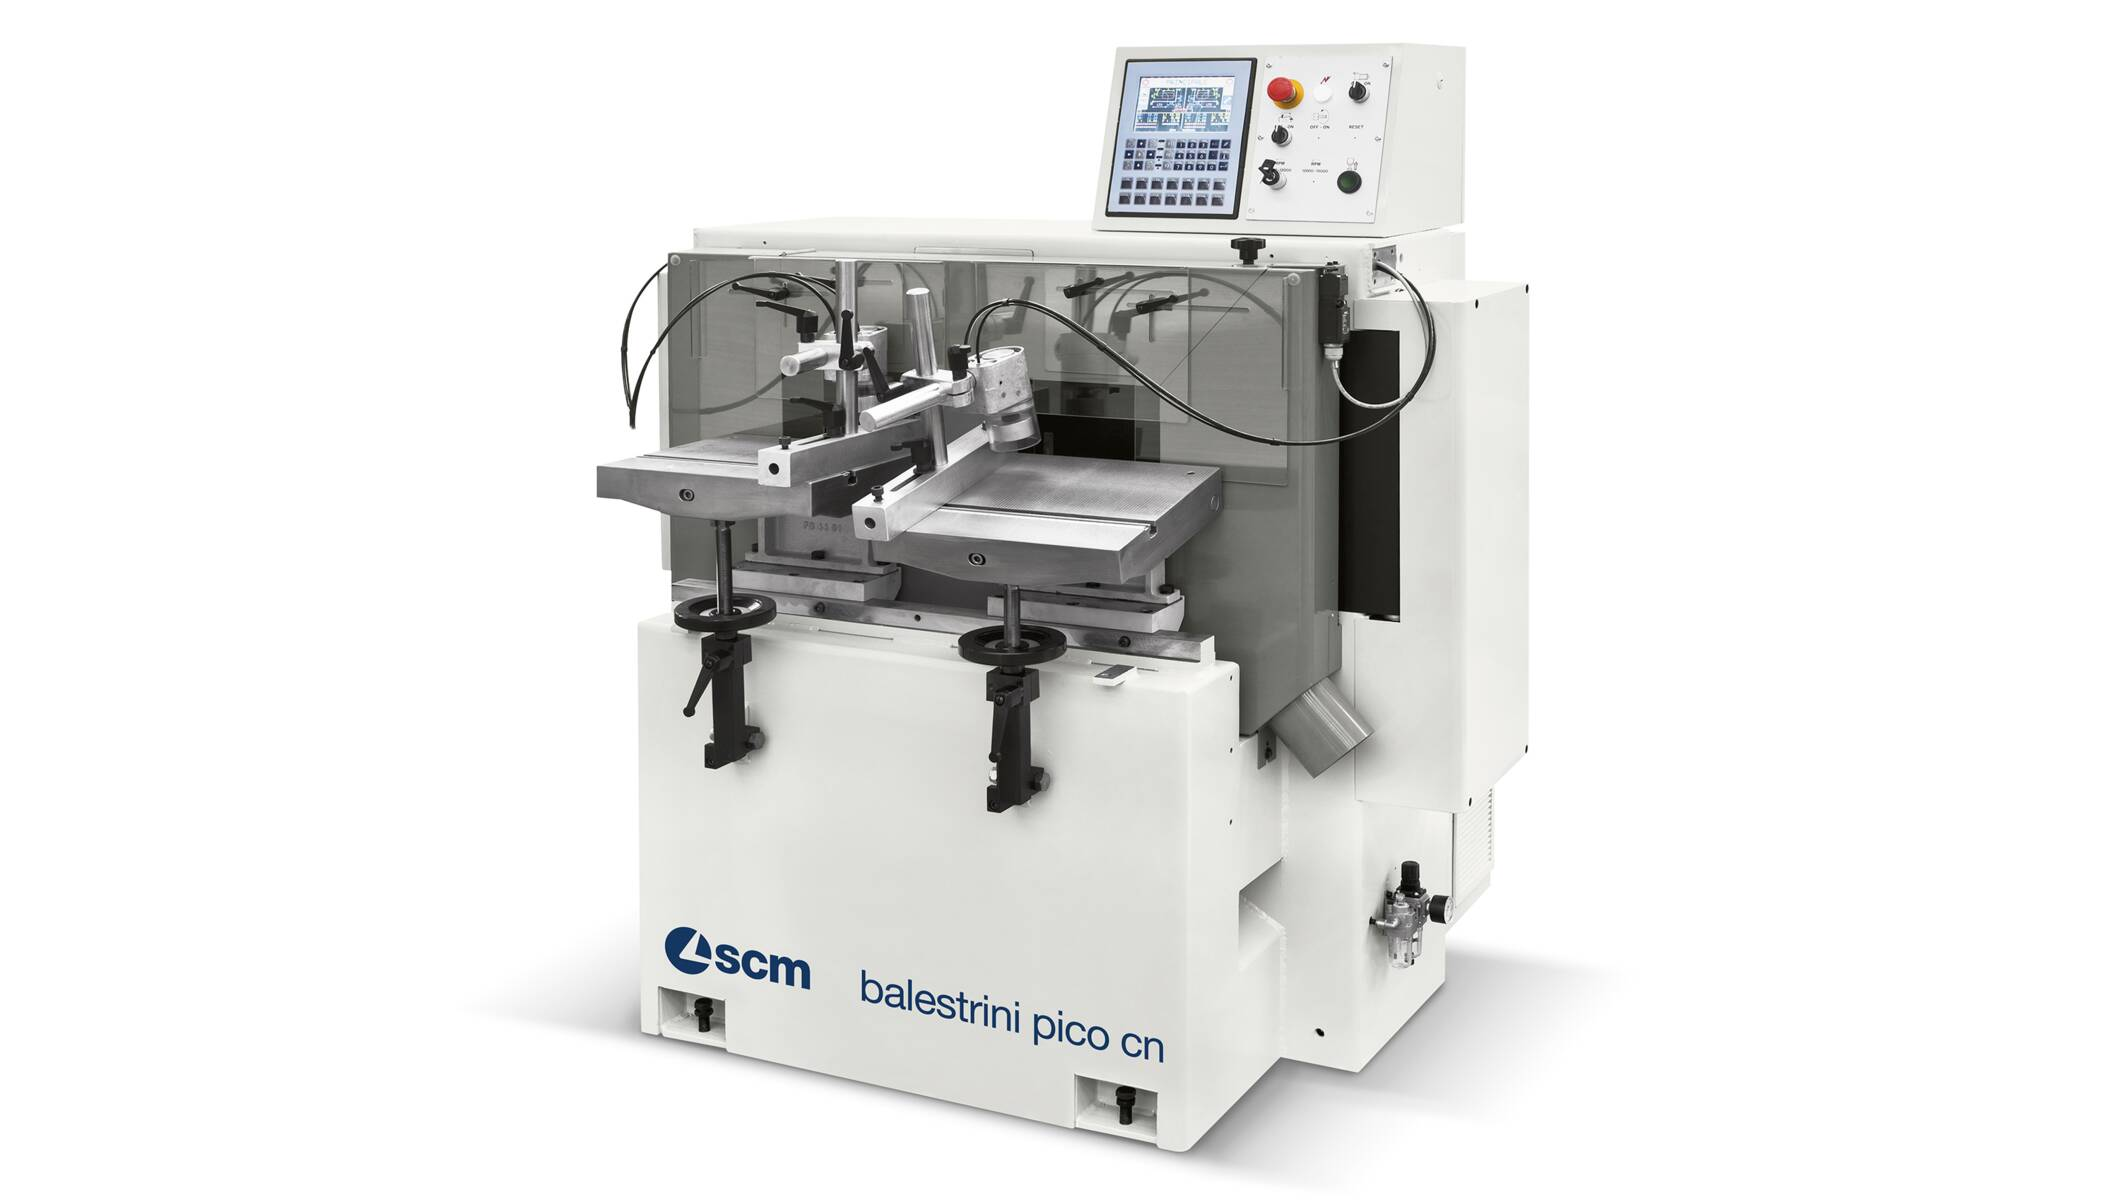 Tenoners, Mortisers, Double sided shapers - Tenoners, Mortisers, Double sided shapers - balestrini pico cn